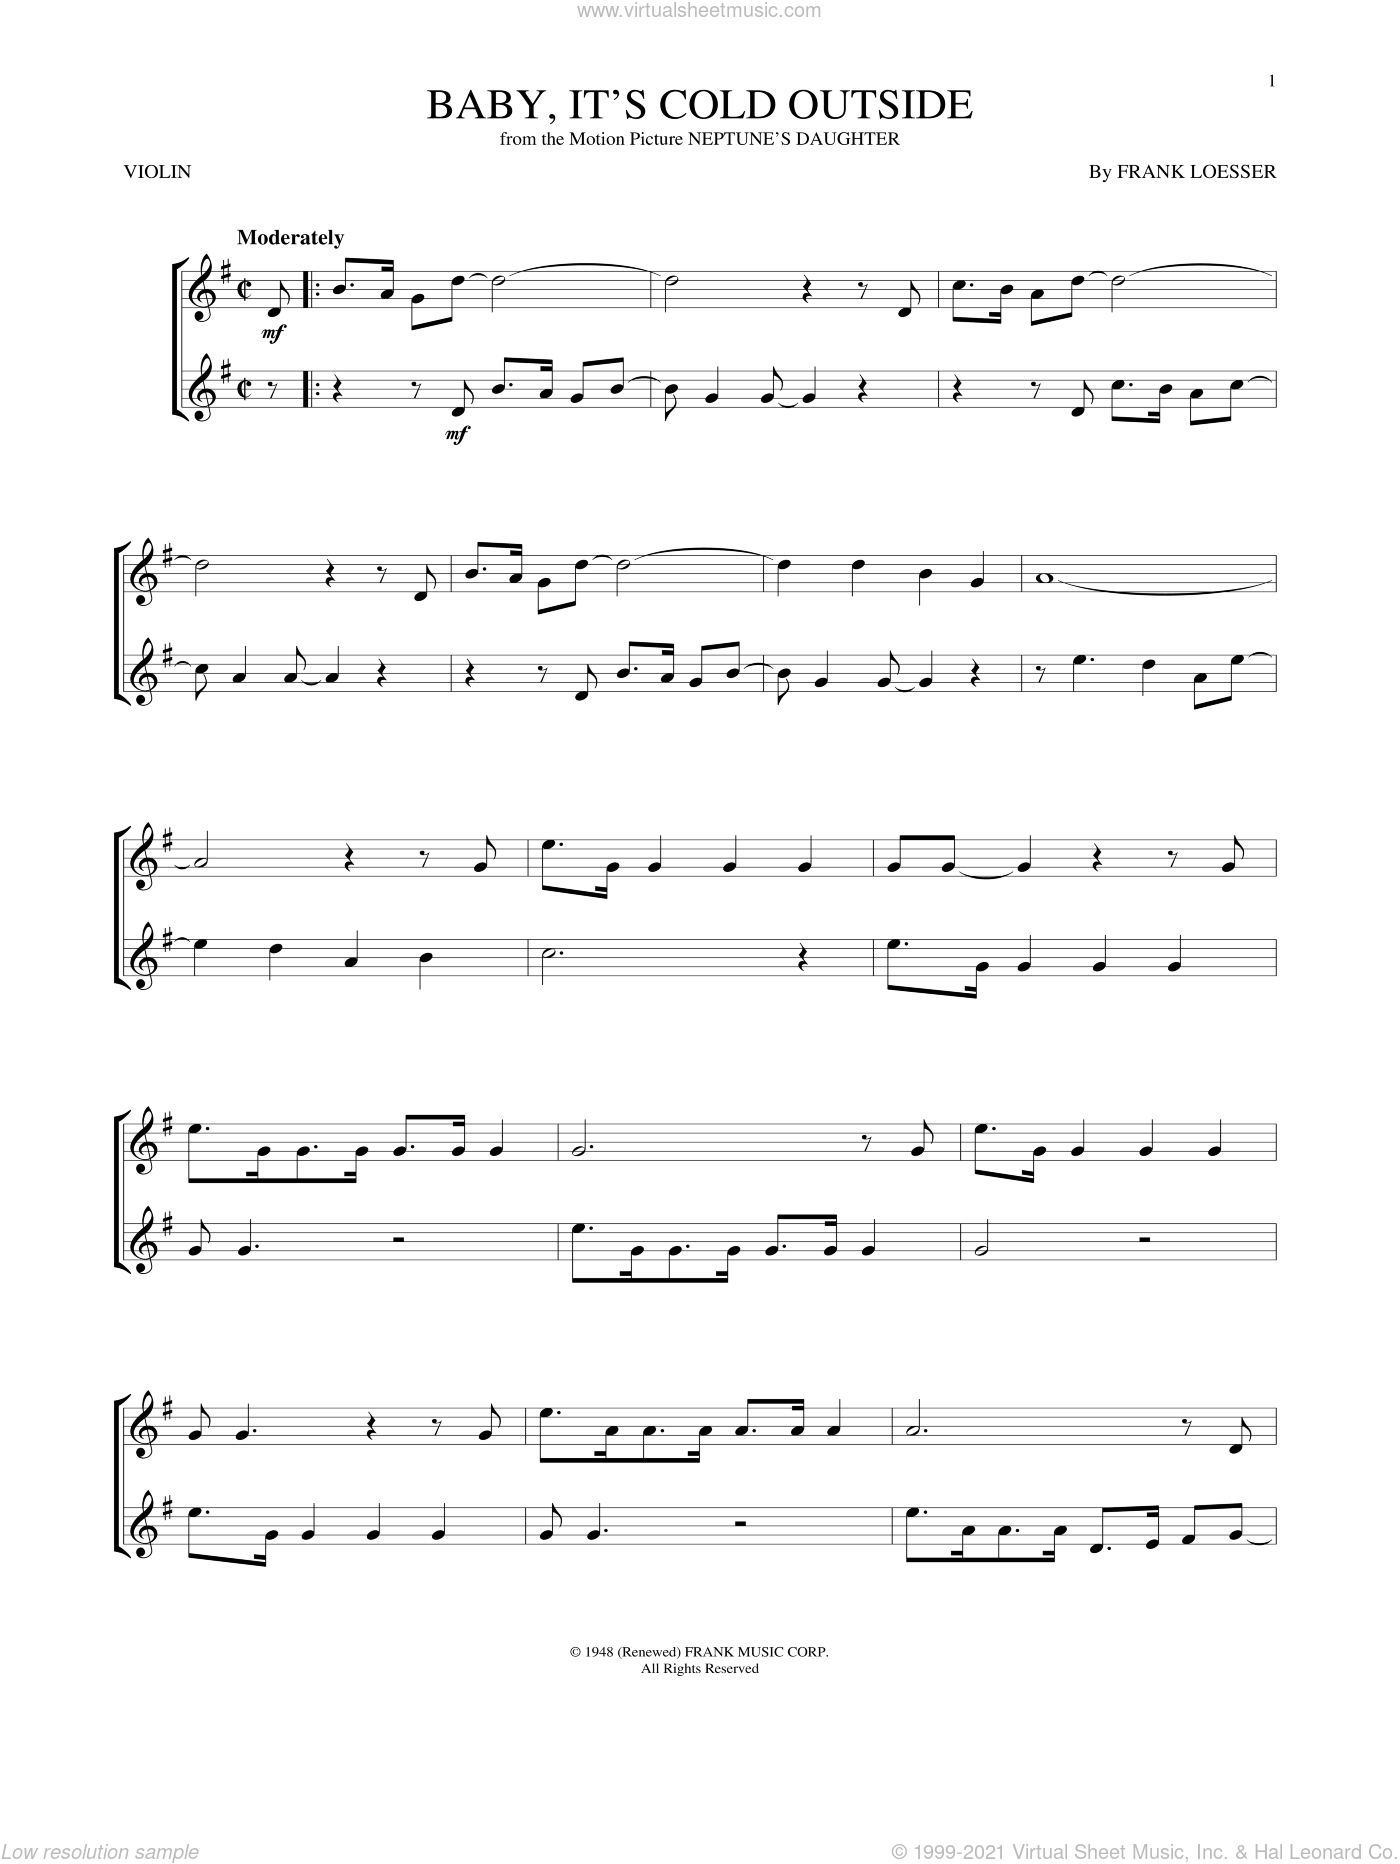 Baby, It's Cold Outside sheet music for violin solo by Frank Loesser, intermediate skill level